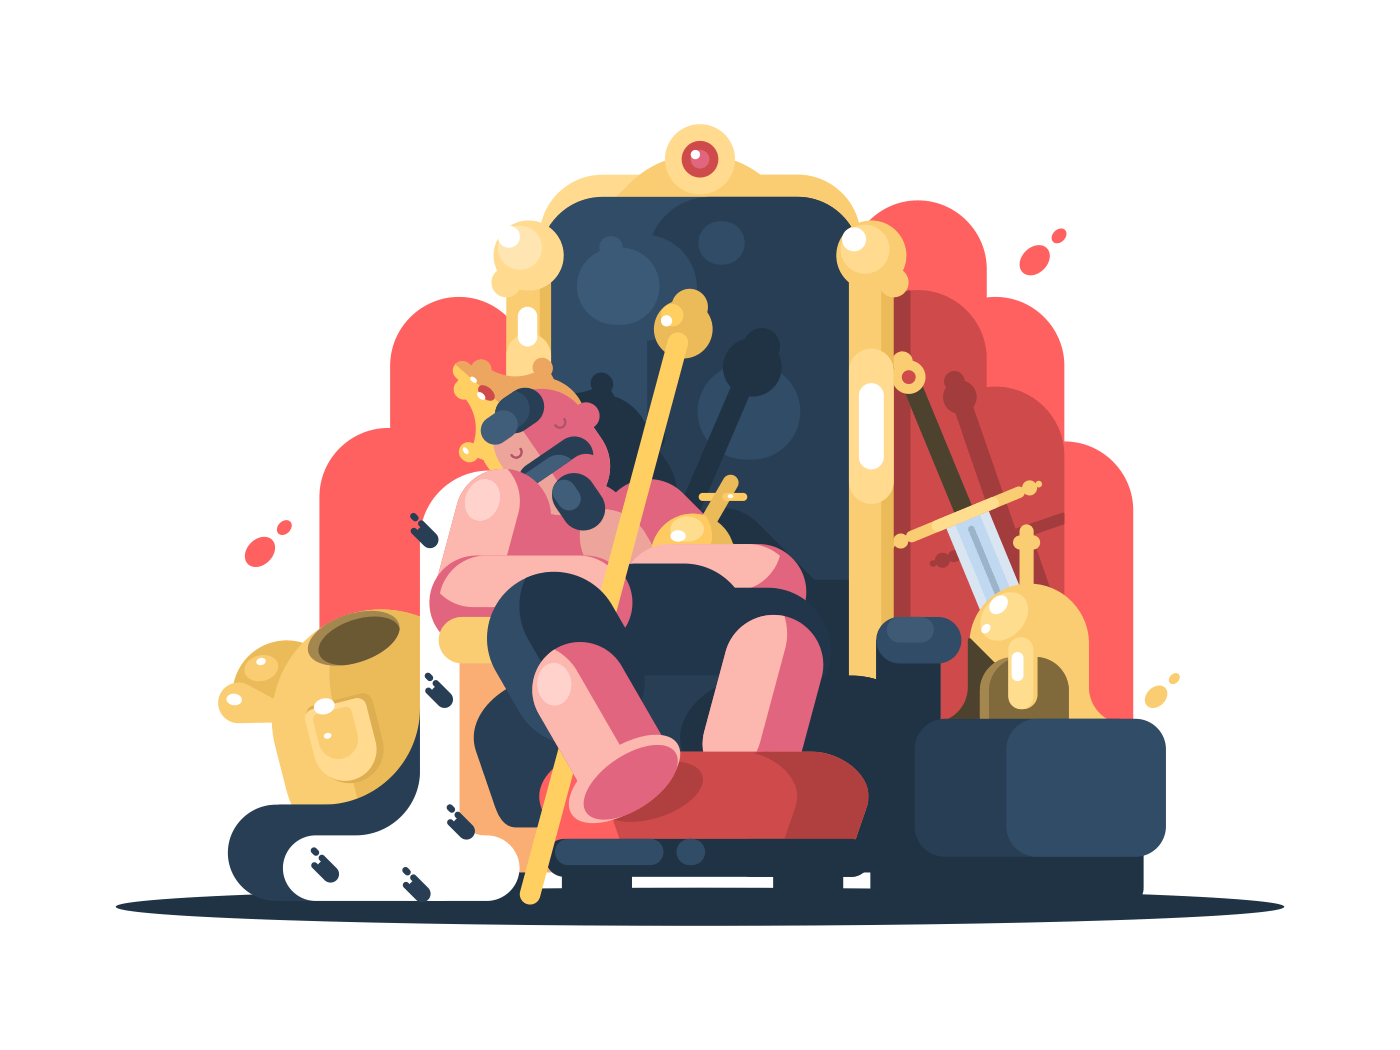 Noble king with crown asleep on golden throne. Vector illustration